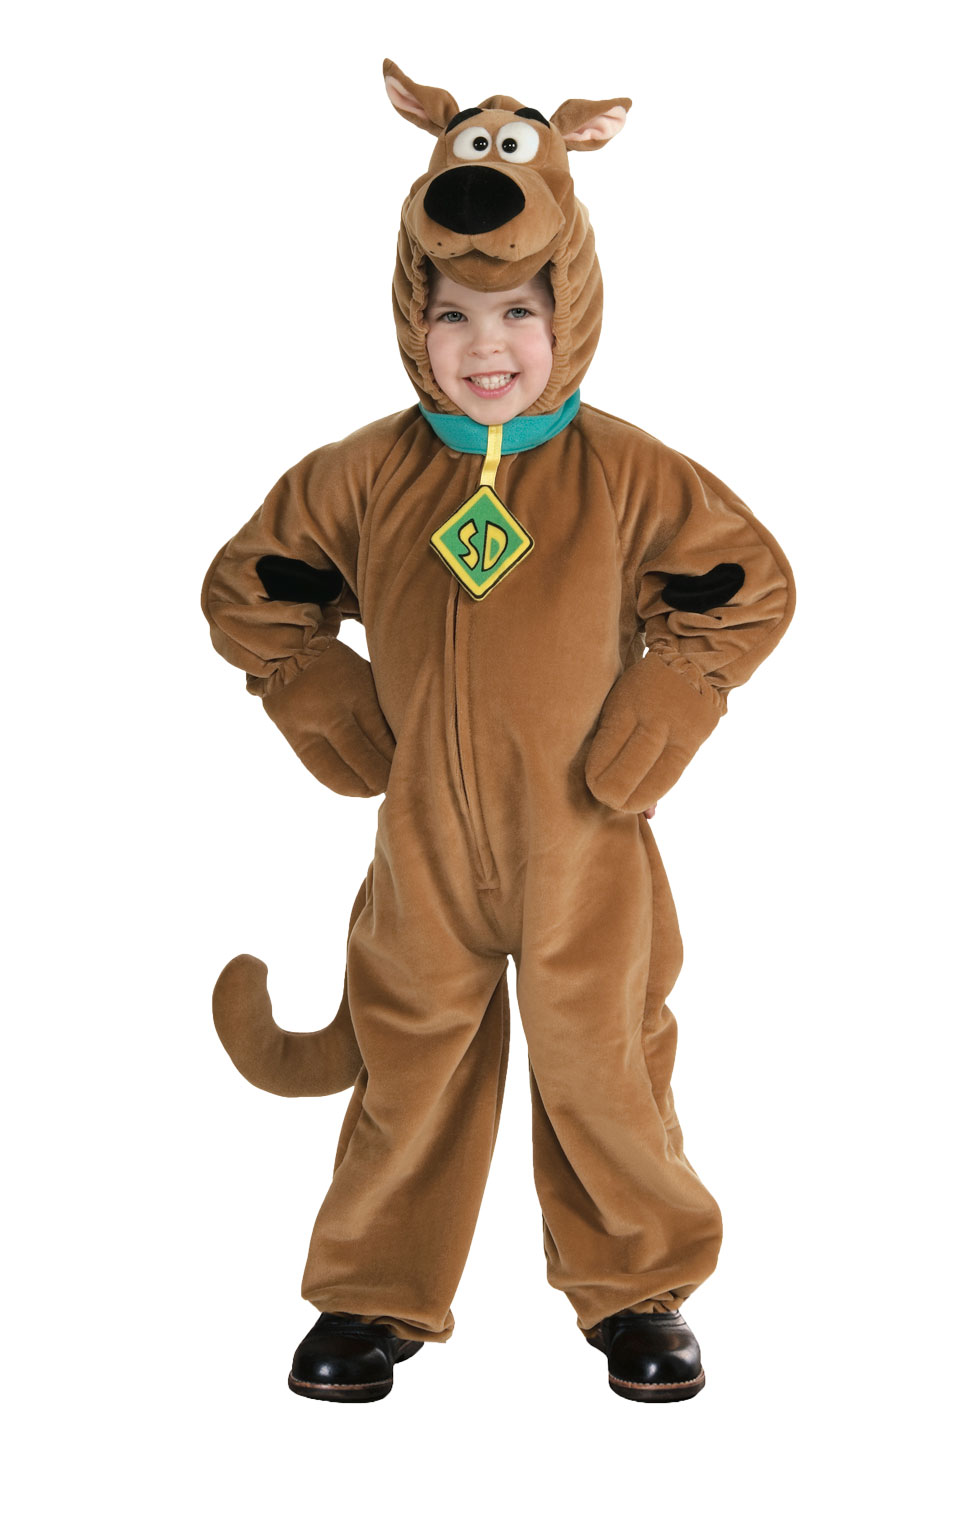 Kids Childs Licensed Scooby Doo Fancy Dress Costume Outfit Rubies Childrens